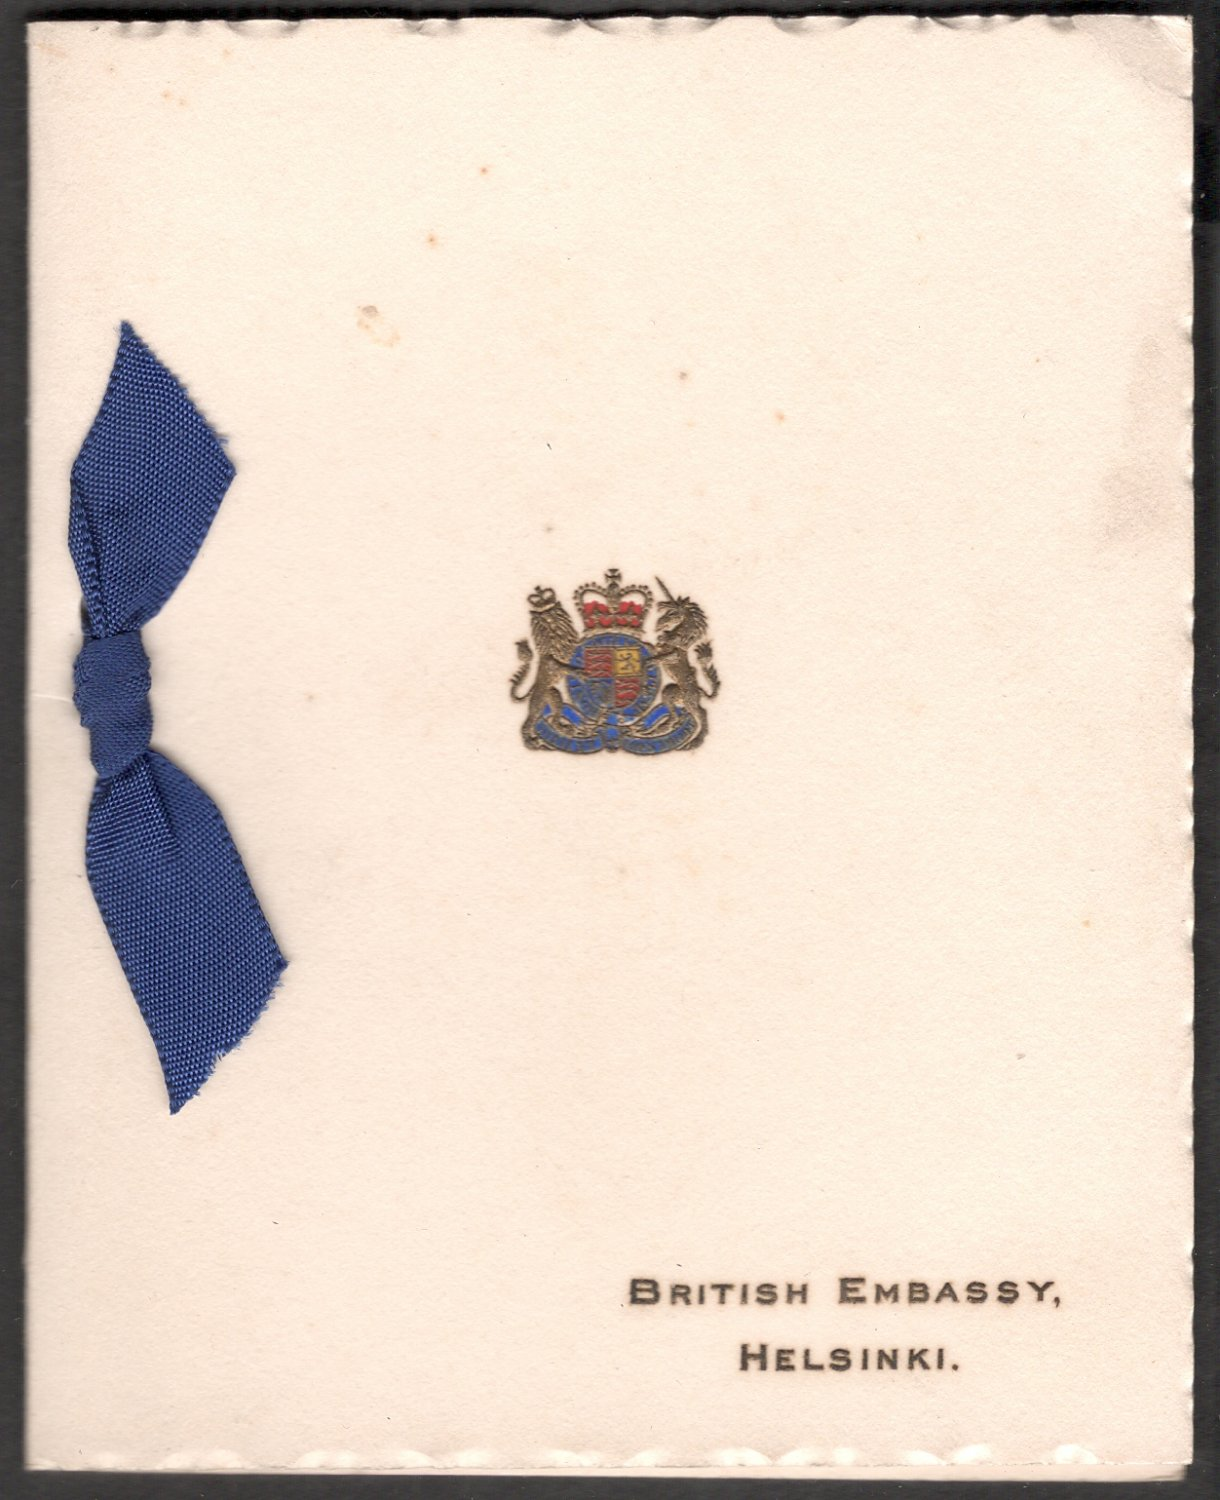 BRITISH EMBASSY ,HELSINKI CHRISTMAS GREETINGS  USED GREETING CARD RARE VINTAGE